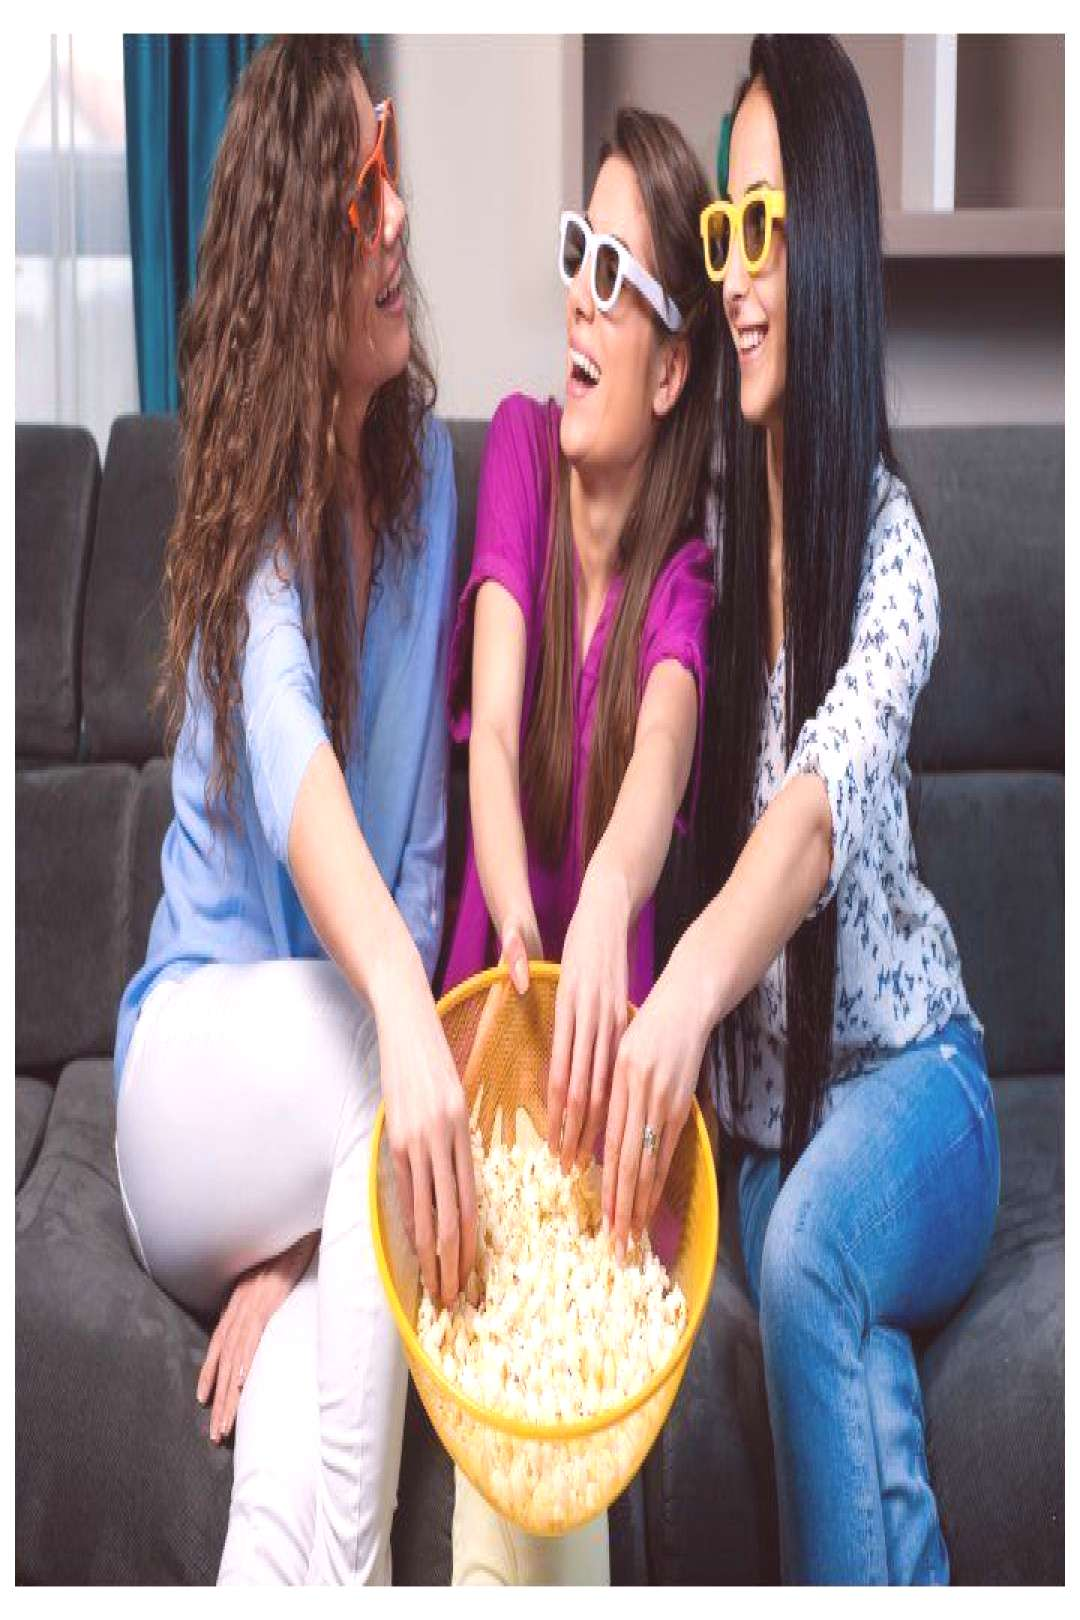 Chick Flicks Style Movies Chick flicks style _ chick flicks movies, chick flicks list, chick flicks